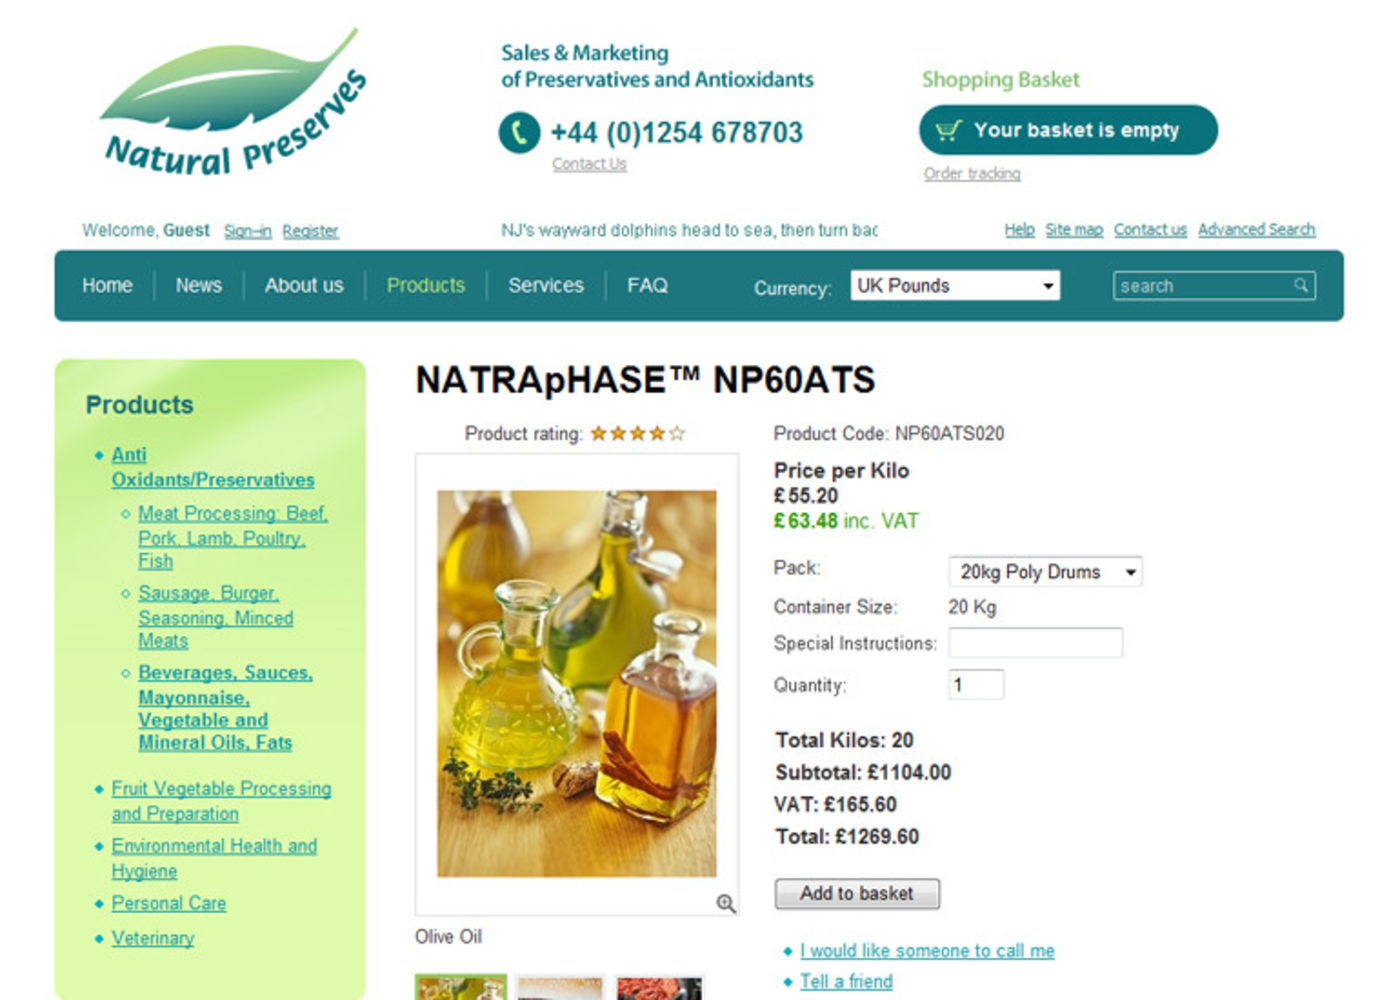 Natural Preserves Limited Product